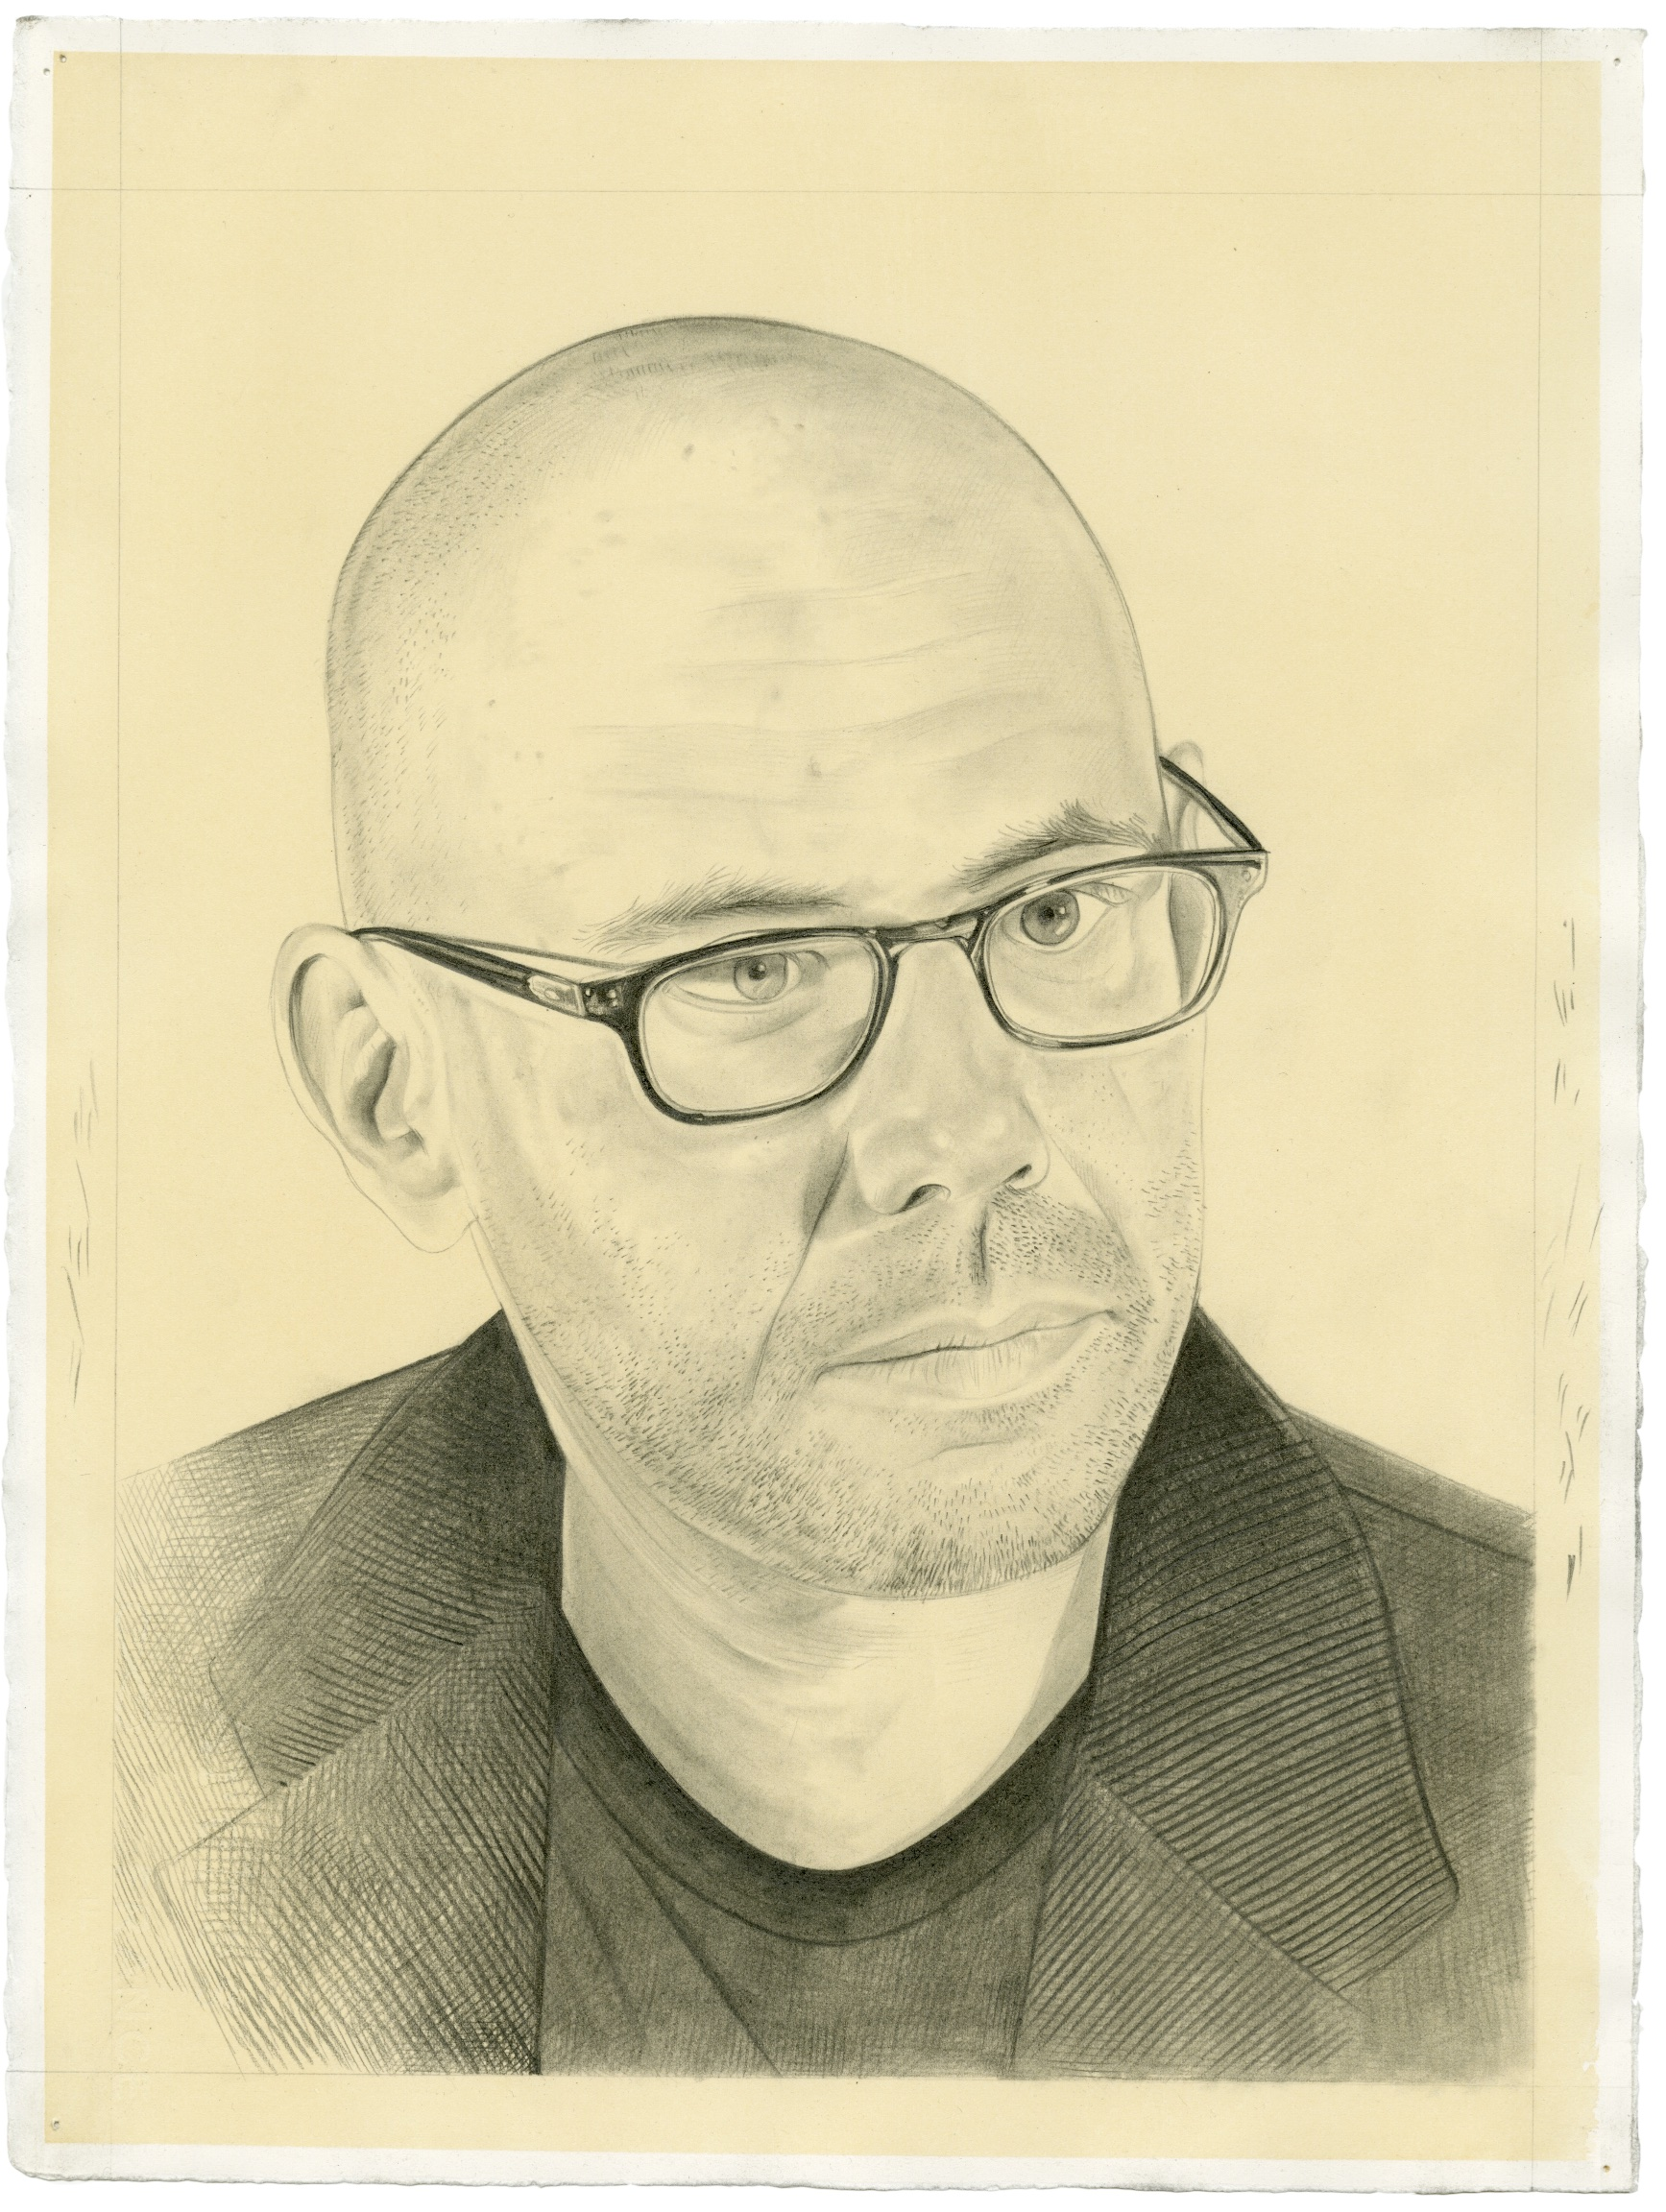 Matthew Biro, Portrait by Phong Bui, 2015